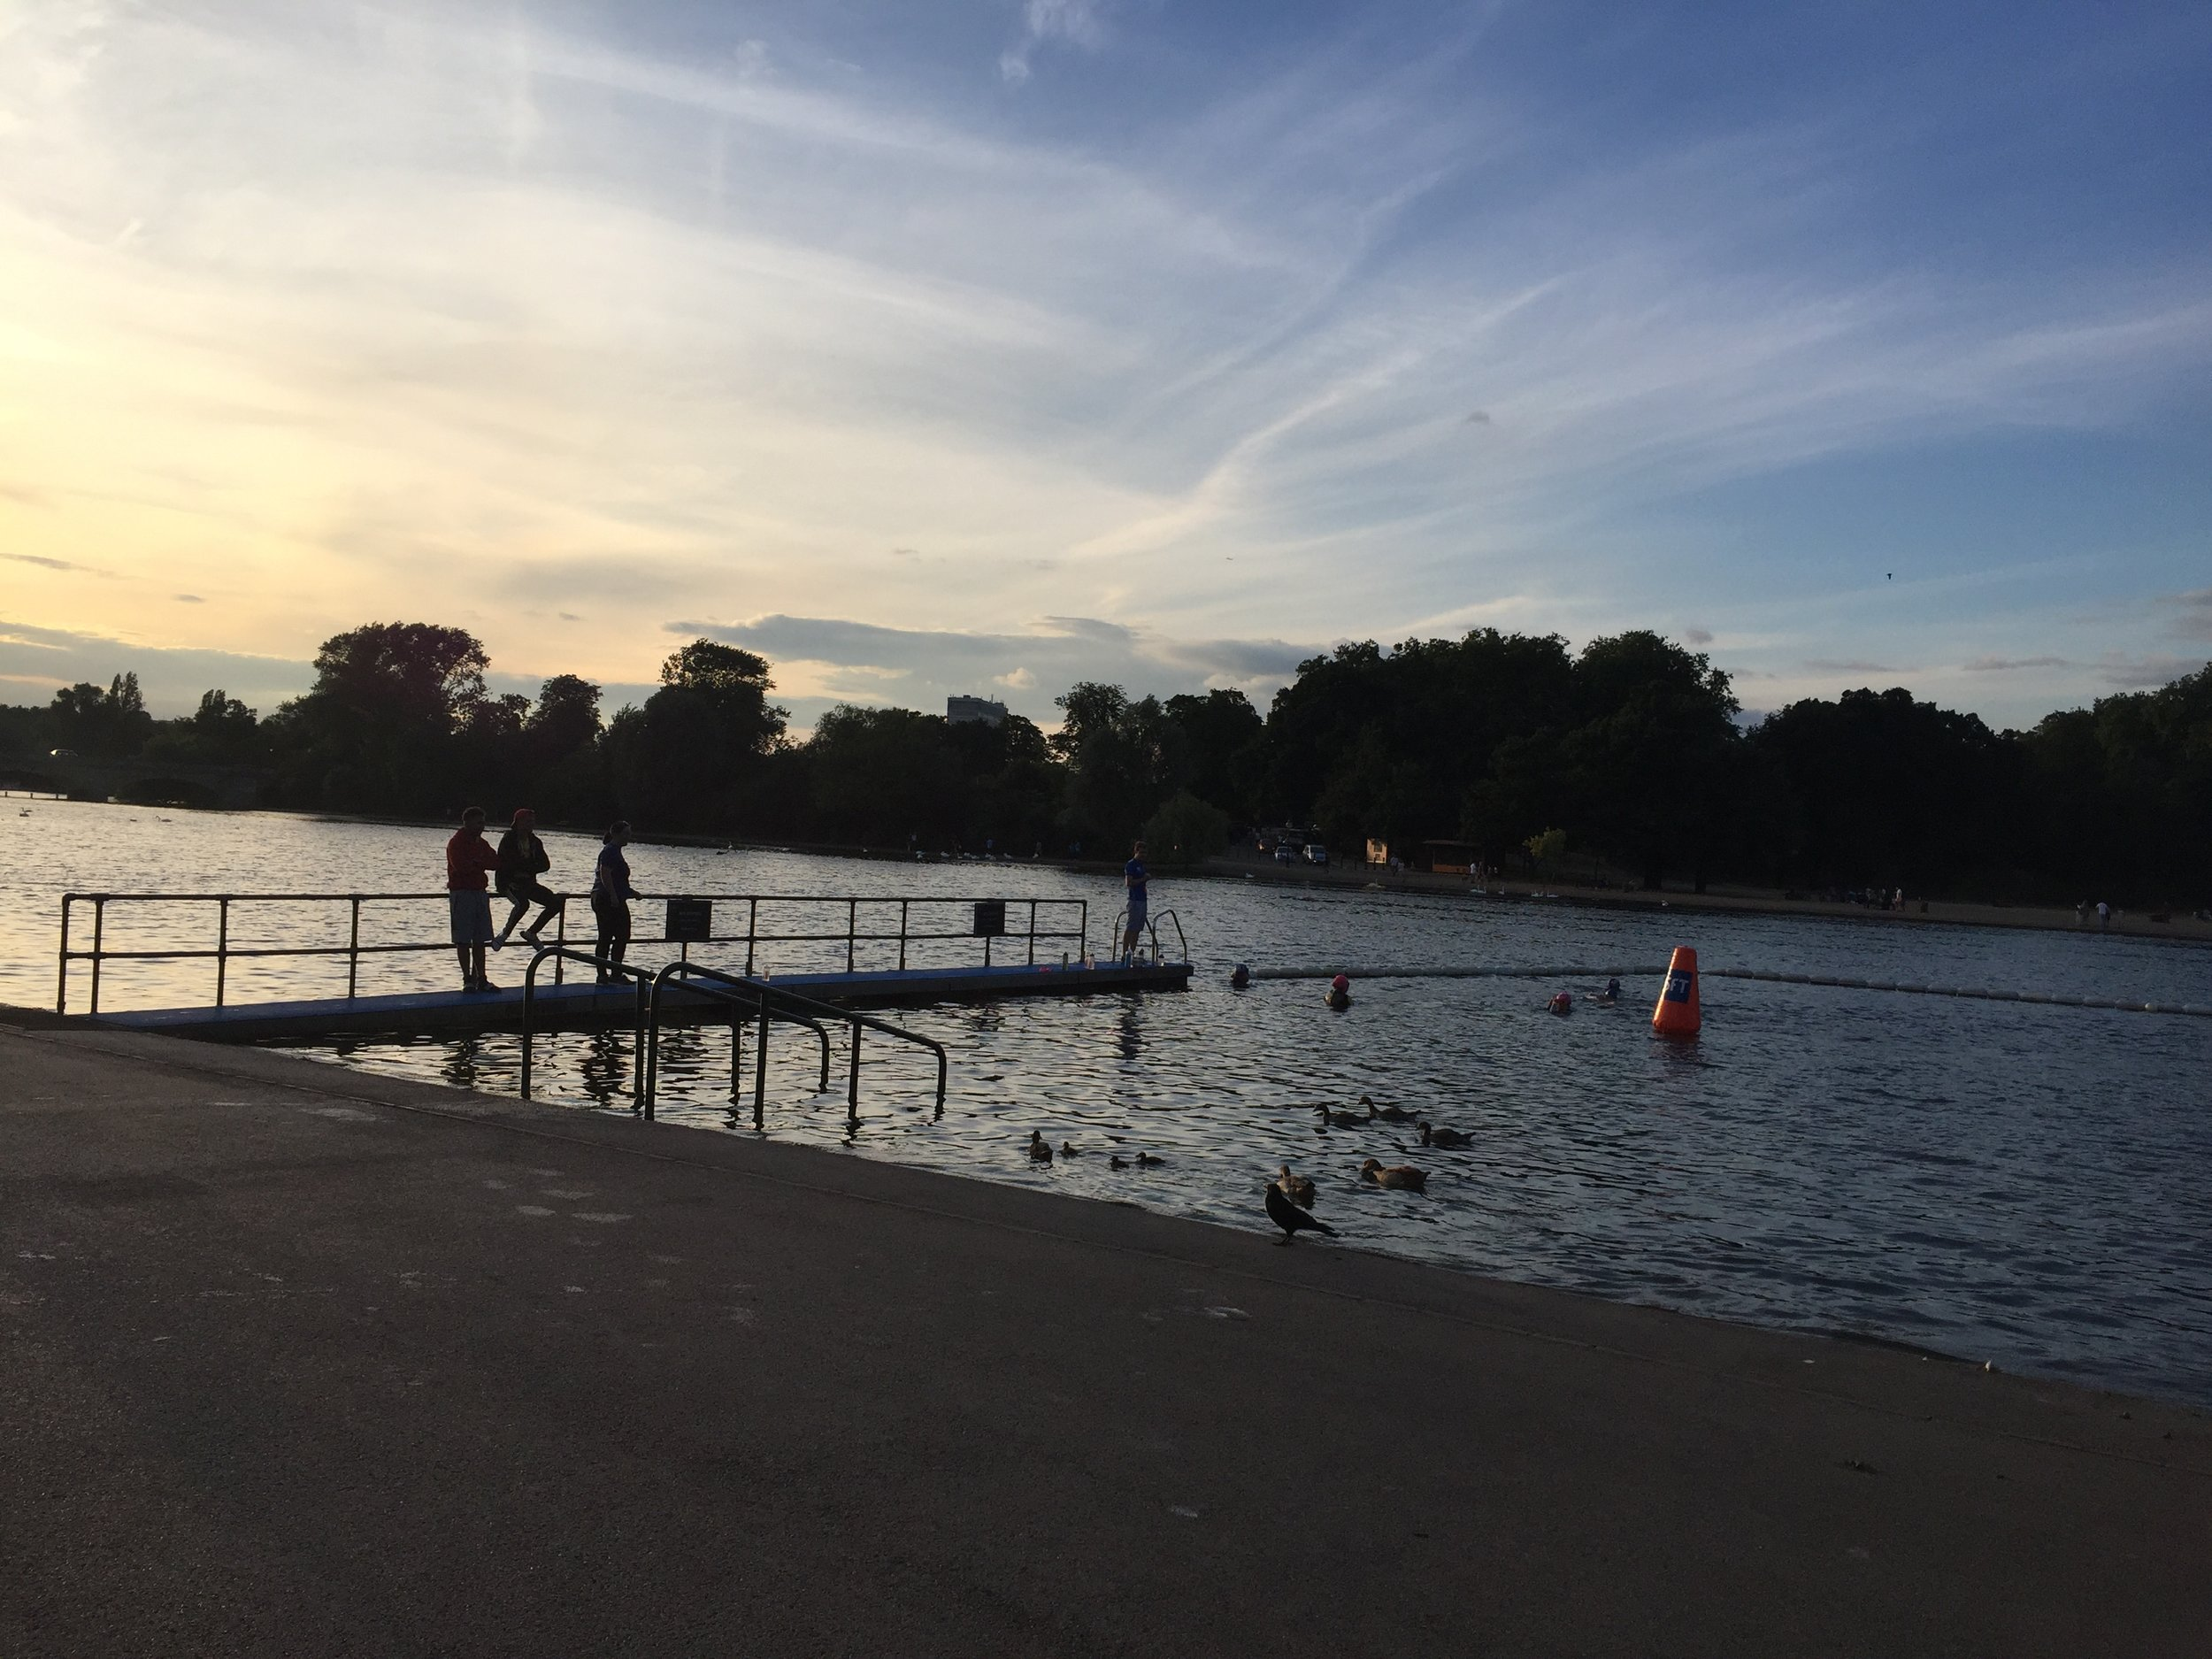 Summer evenings spent in Hyde Park swimming in the Serpentine, come rain or shine! For the most part it was a positive experience!